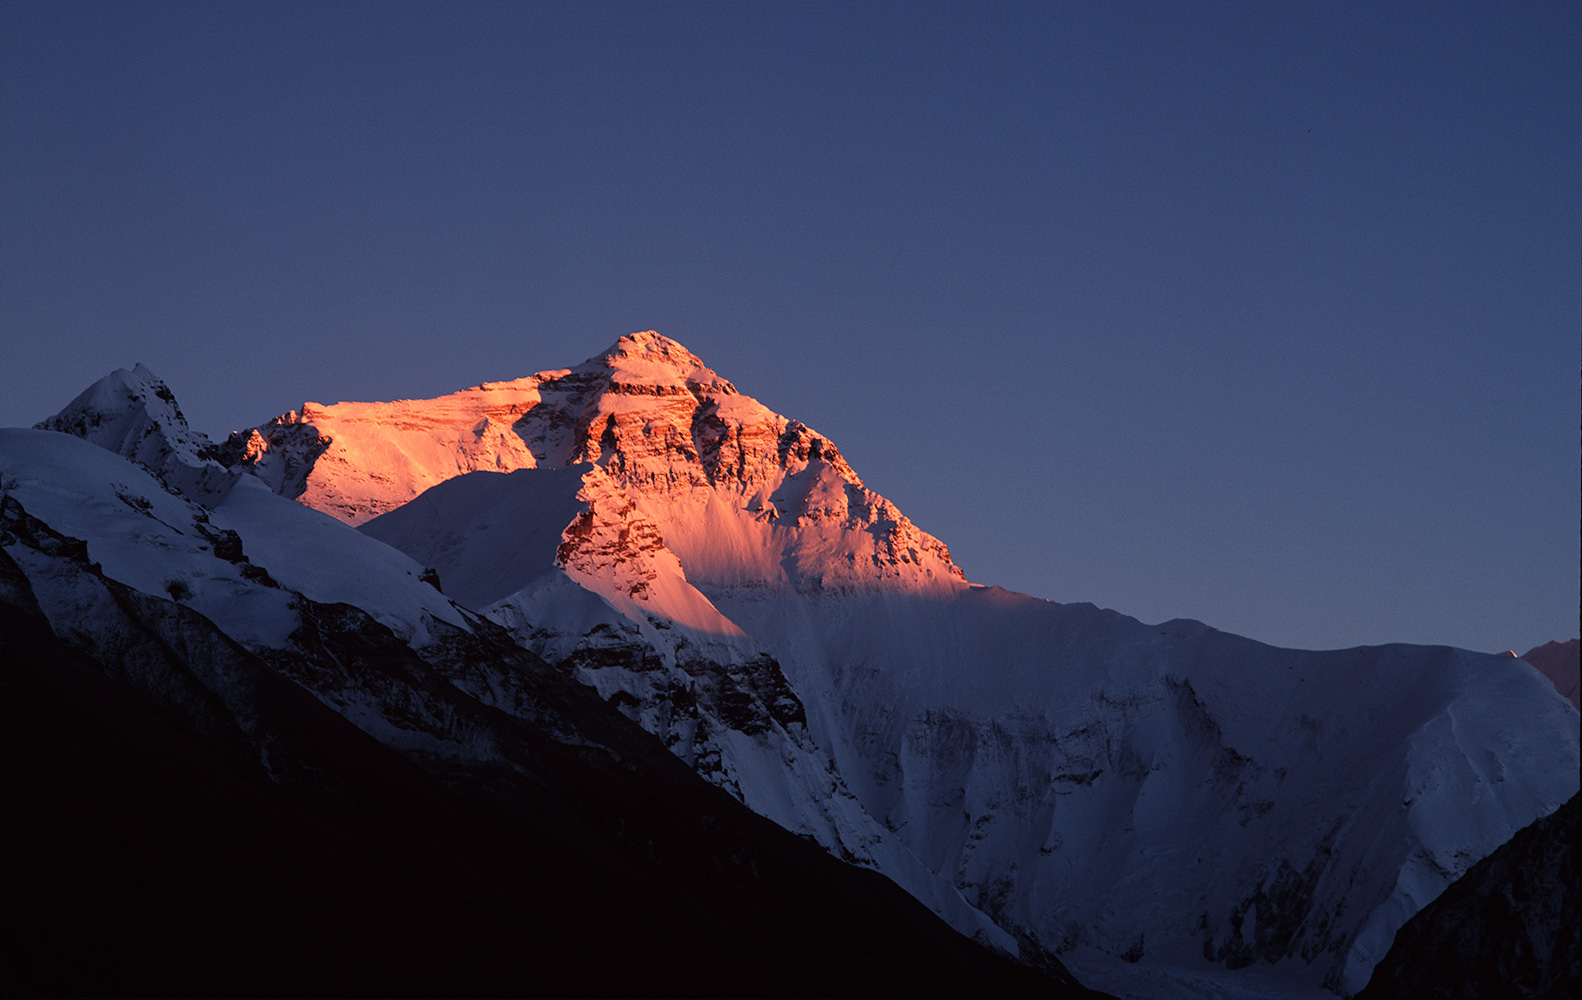 The north face of Everest (8858m) at sunset from the moraine of the Rogbuk glacier above base campBronica ETRSi, 150mm, Fuji Velvia